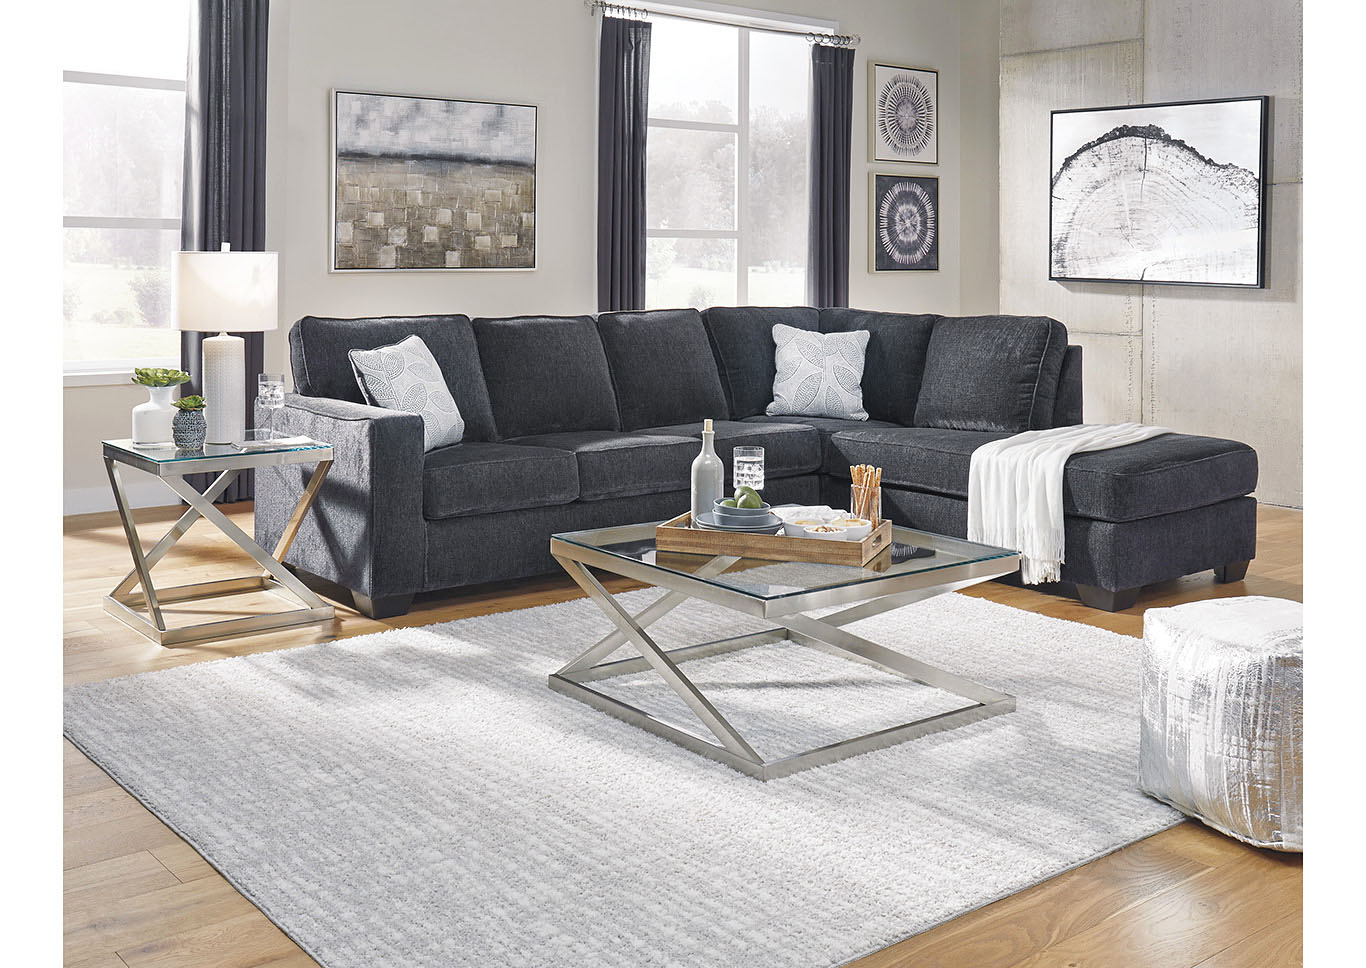 Altari Slate Left-Arm Facing Chaise Sectional,Signature Design By Ashley